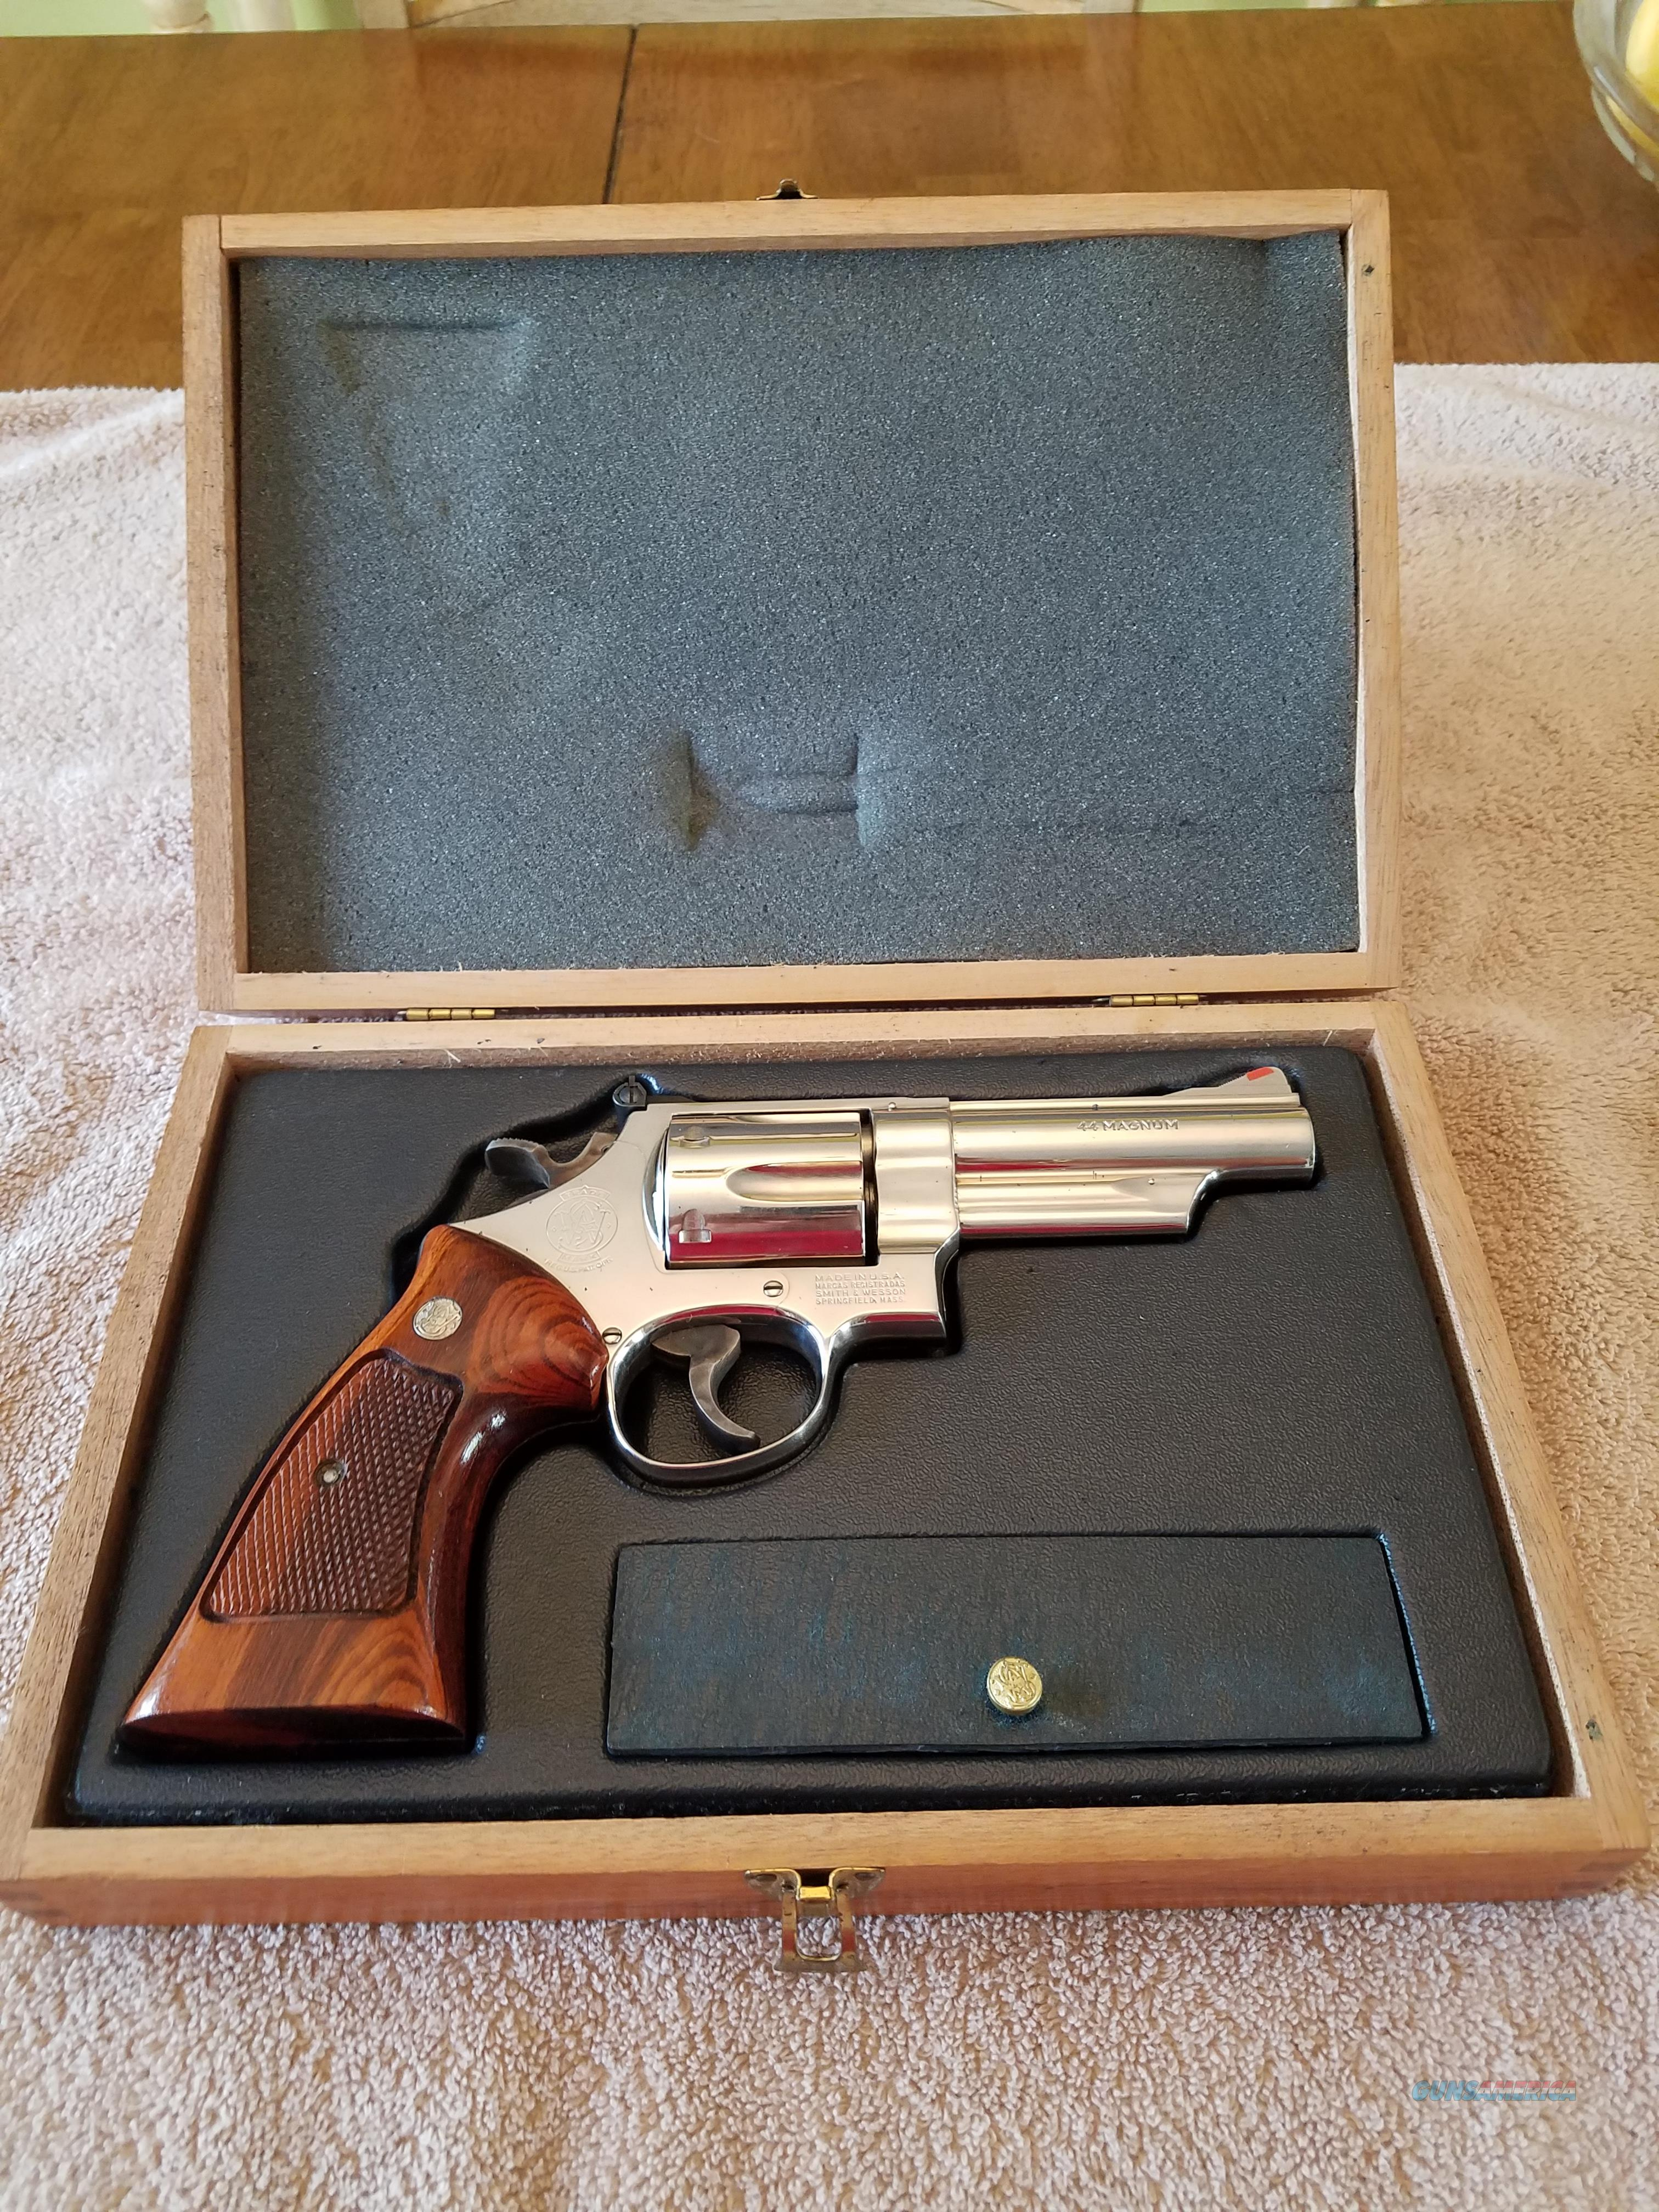 Smith & Wesson revolver model 29-2  44 magnum N suffix  Guns > Pistols > Smith & Wesson Revolvers > Full Frame Revolver